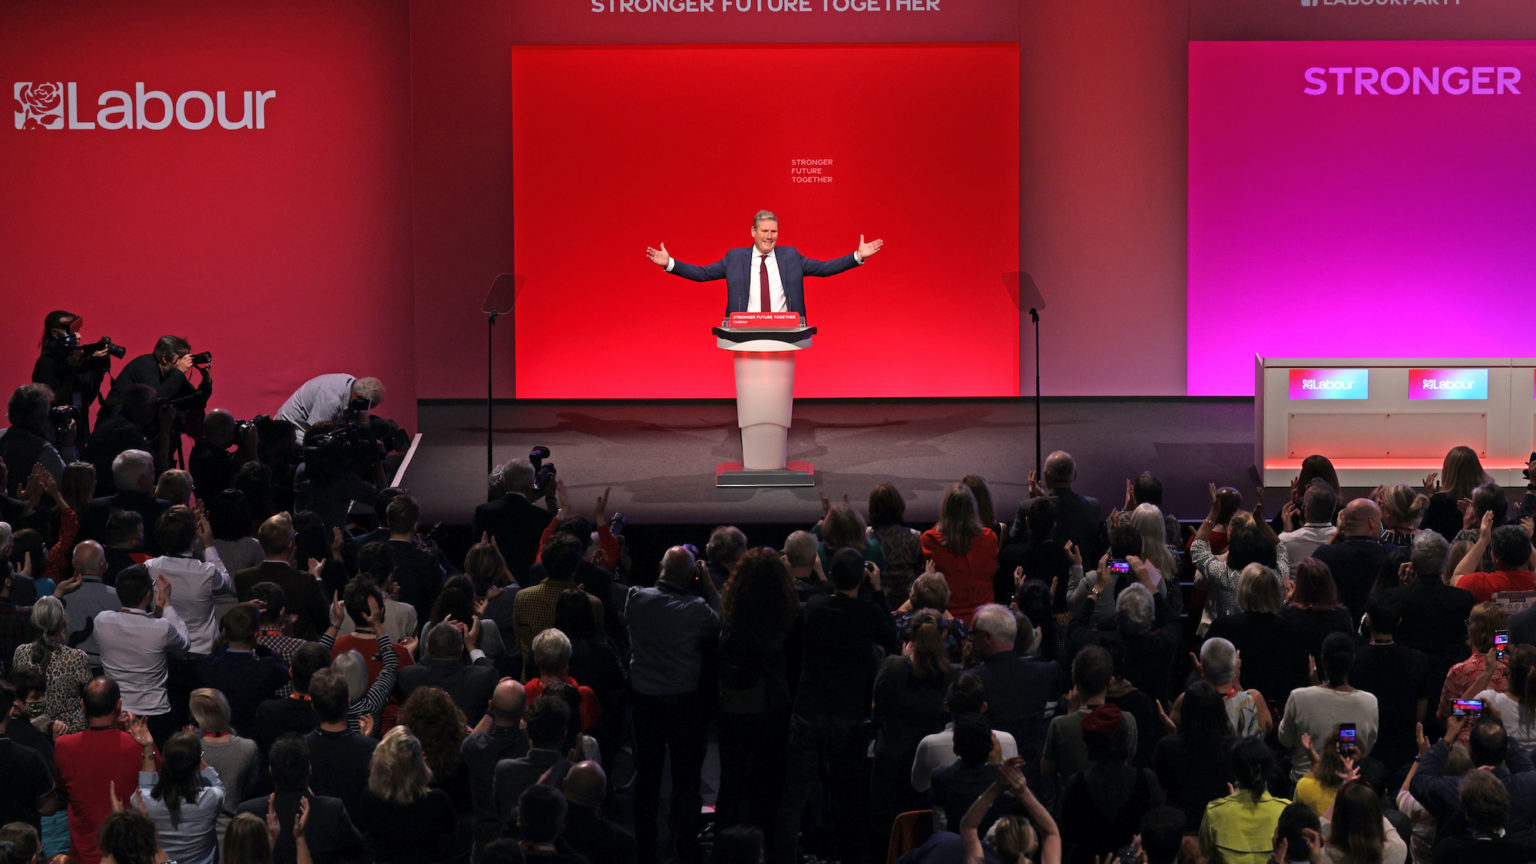 Labour is now the party of hate